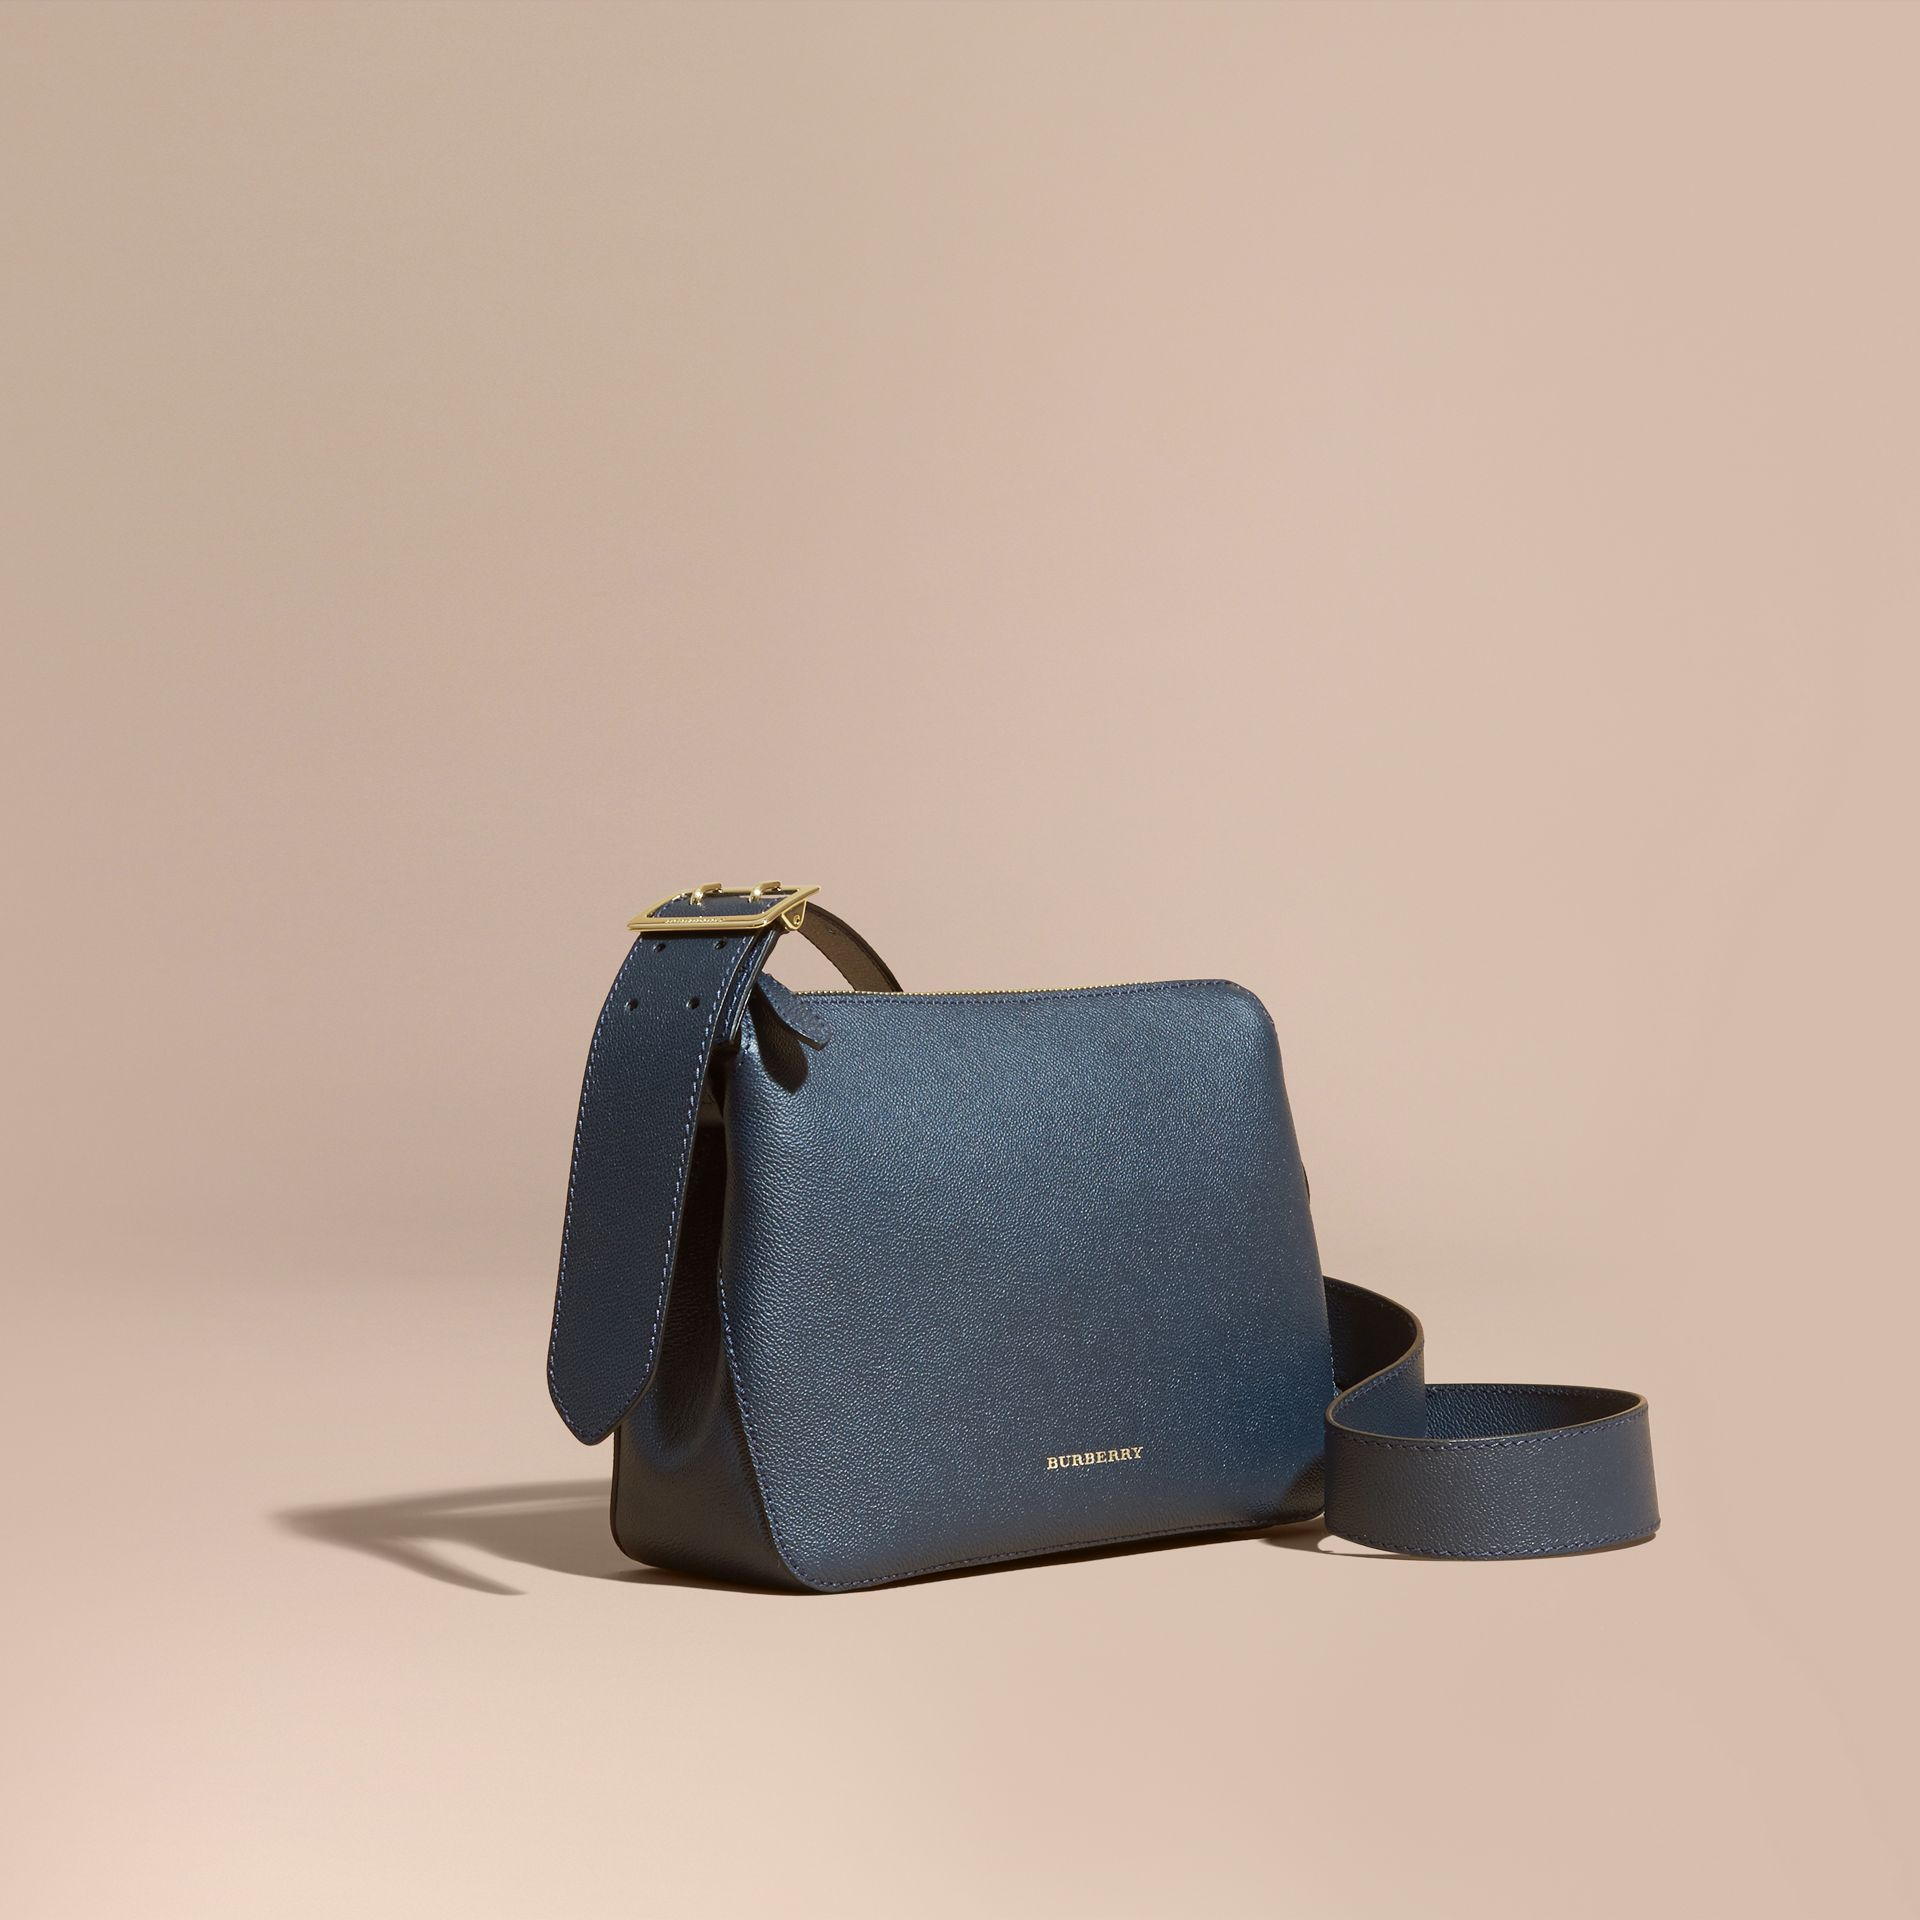 Buckle Detail Leather Crossbody Bag in Blue Carbon - gallery image 1